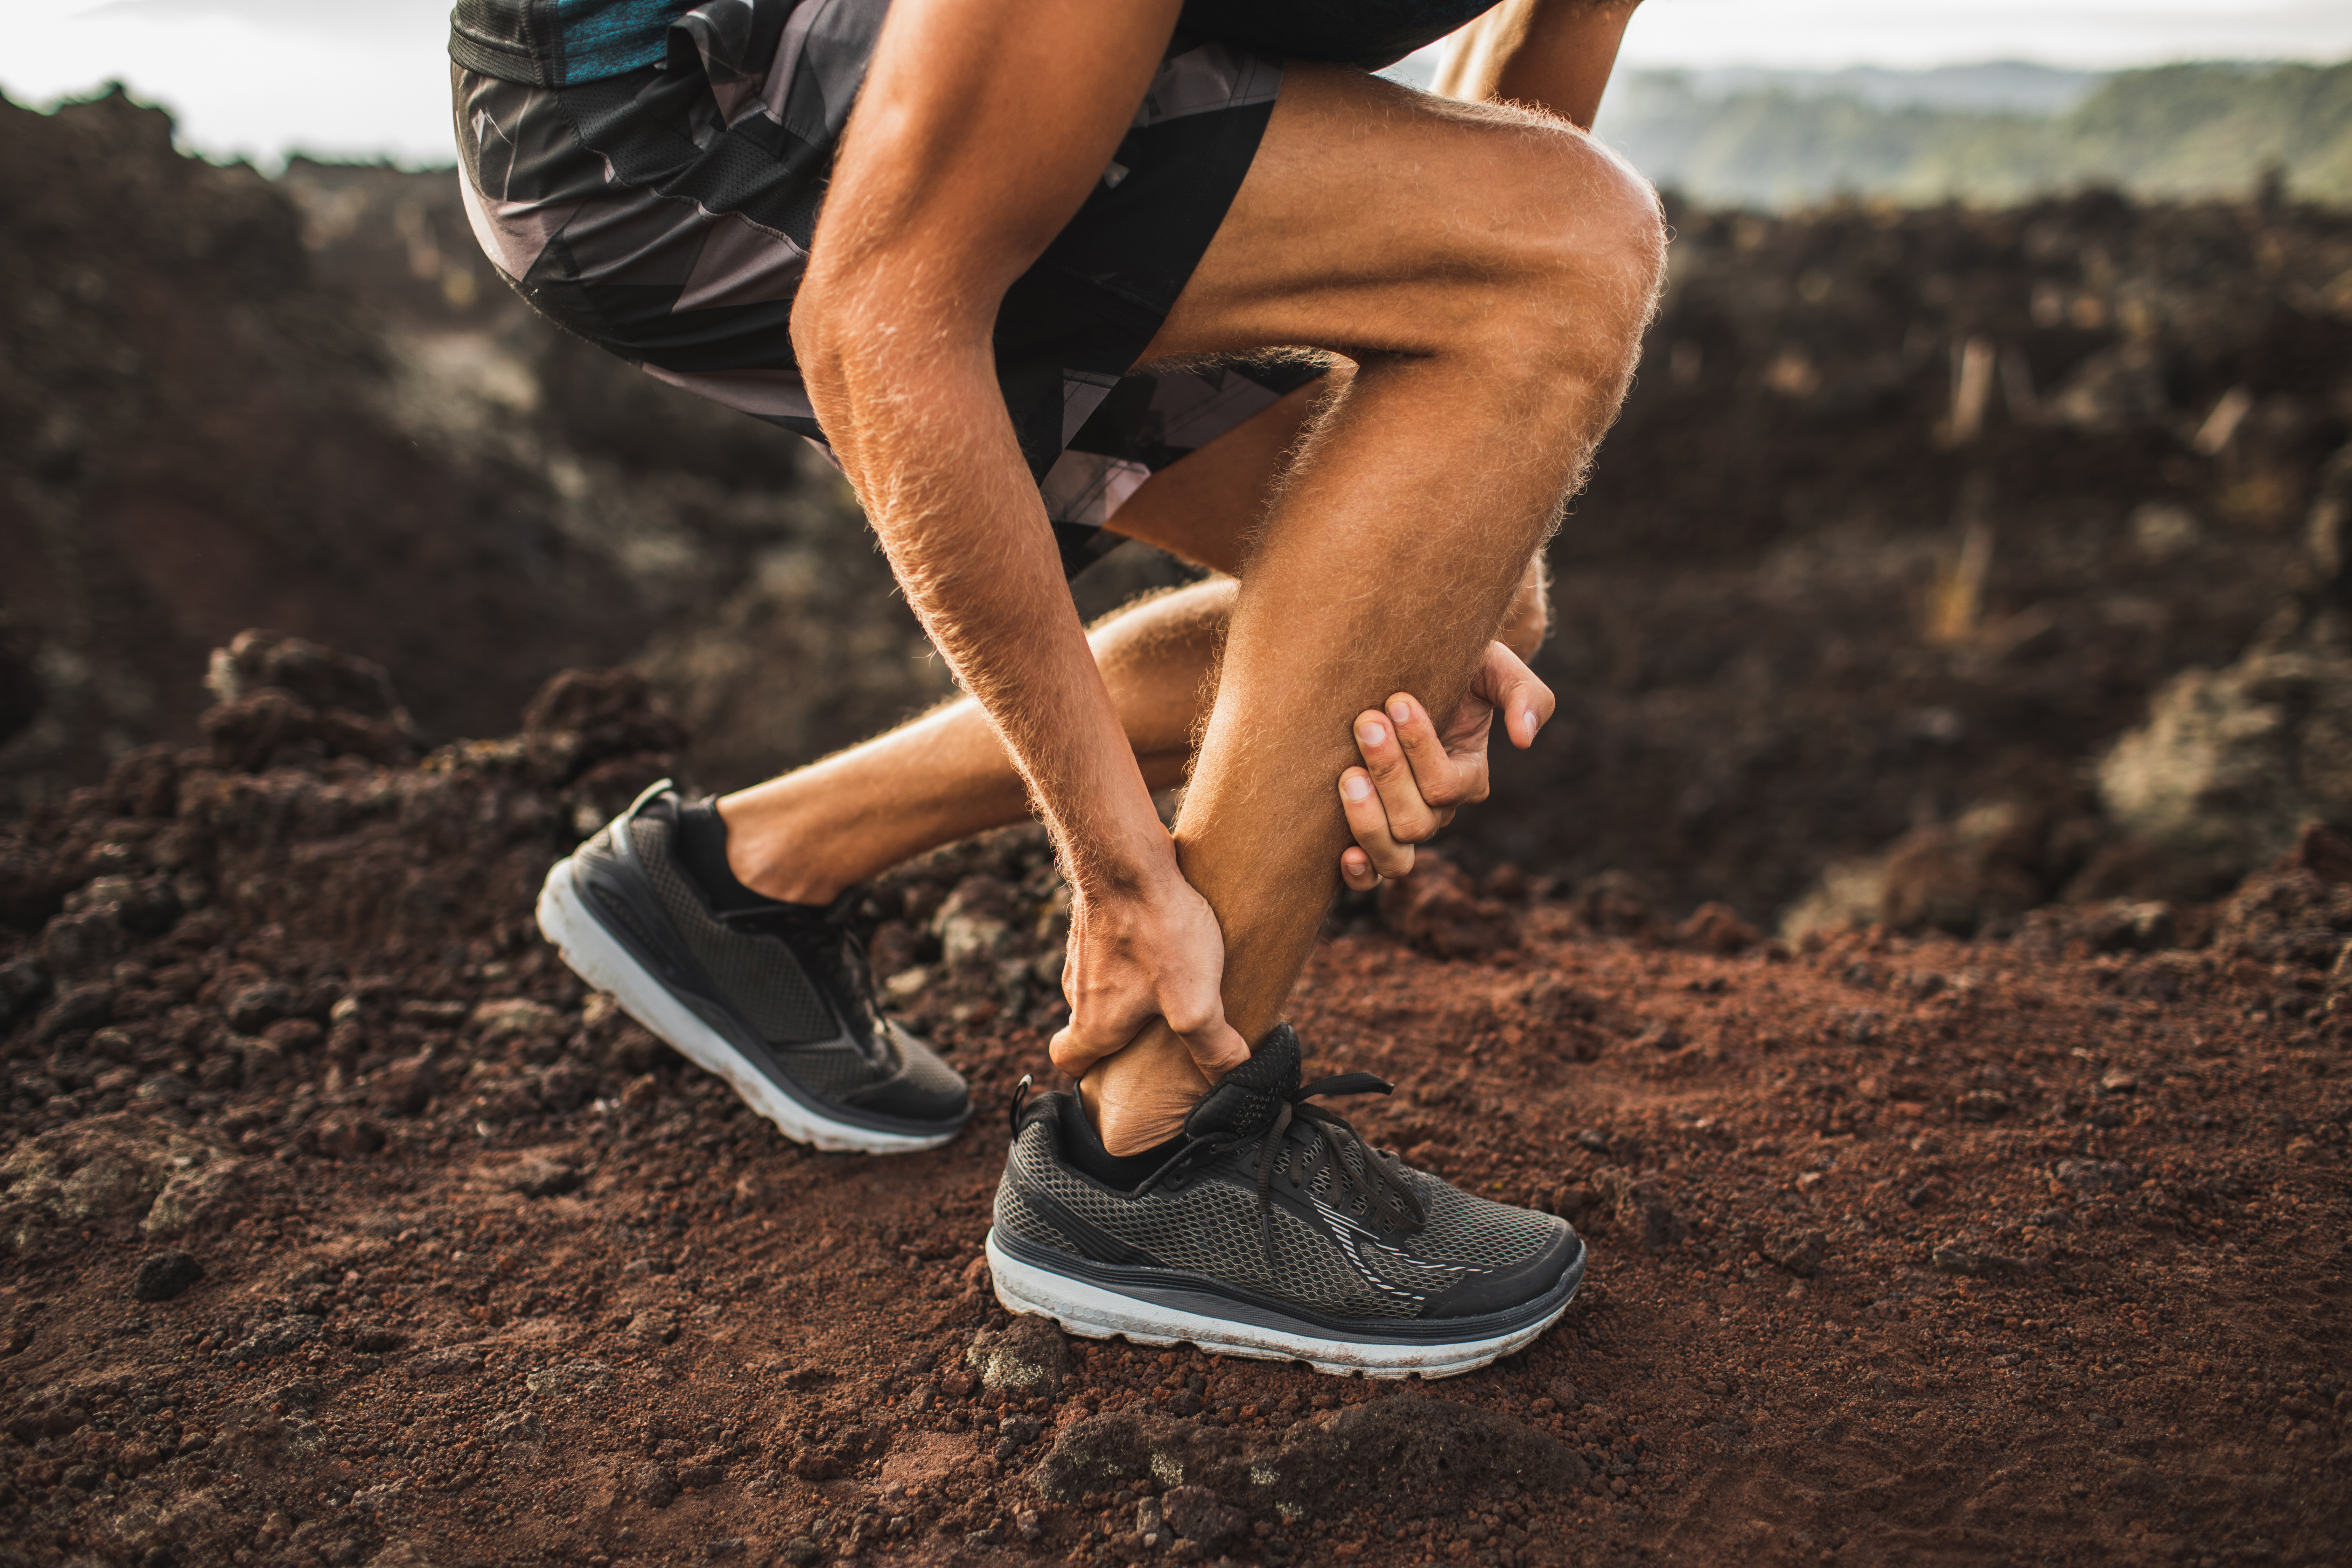 5 Ways to Prevent an Achilles Tendon Rupture